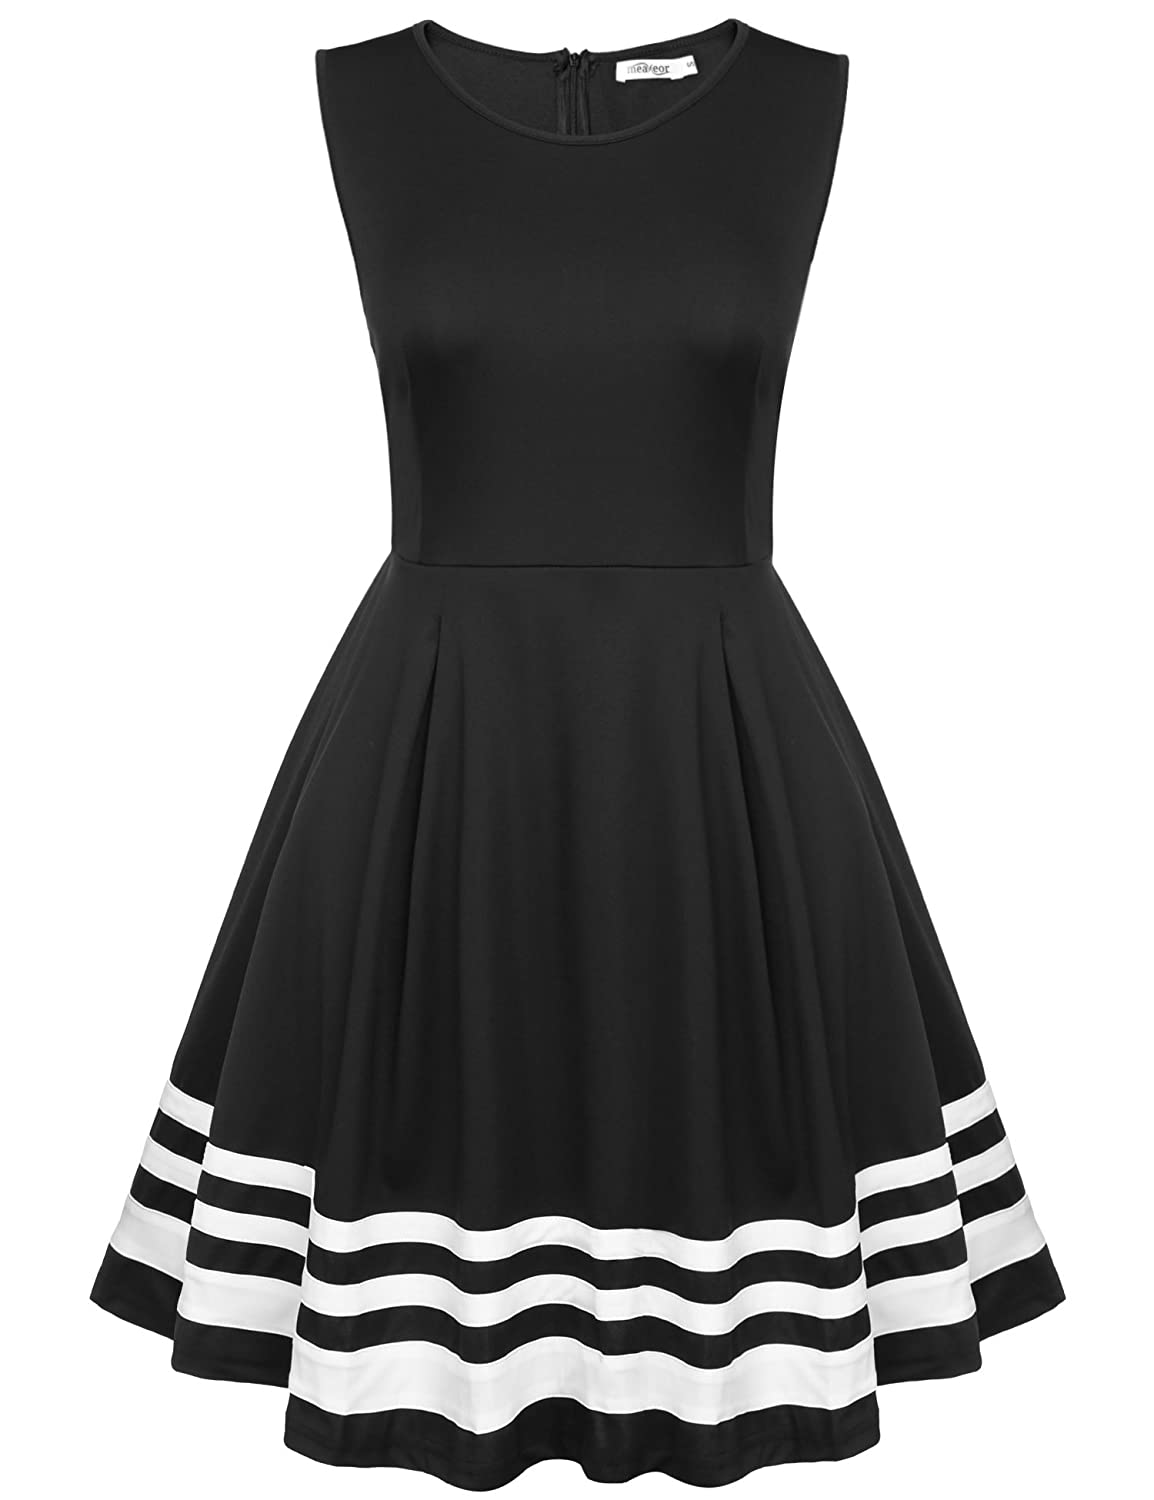 Color block party dress - Cheap Meaneor Women Classy Black White Swing Dress Sleeveless Color Block Party Dress